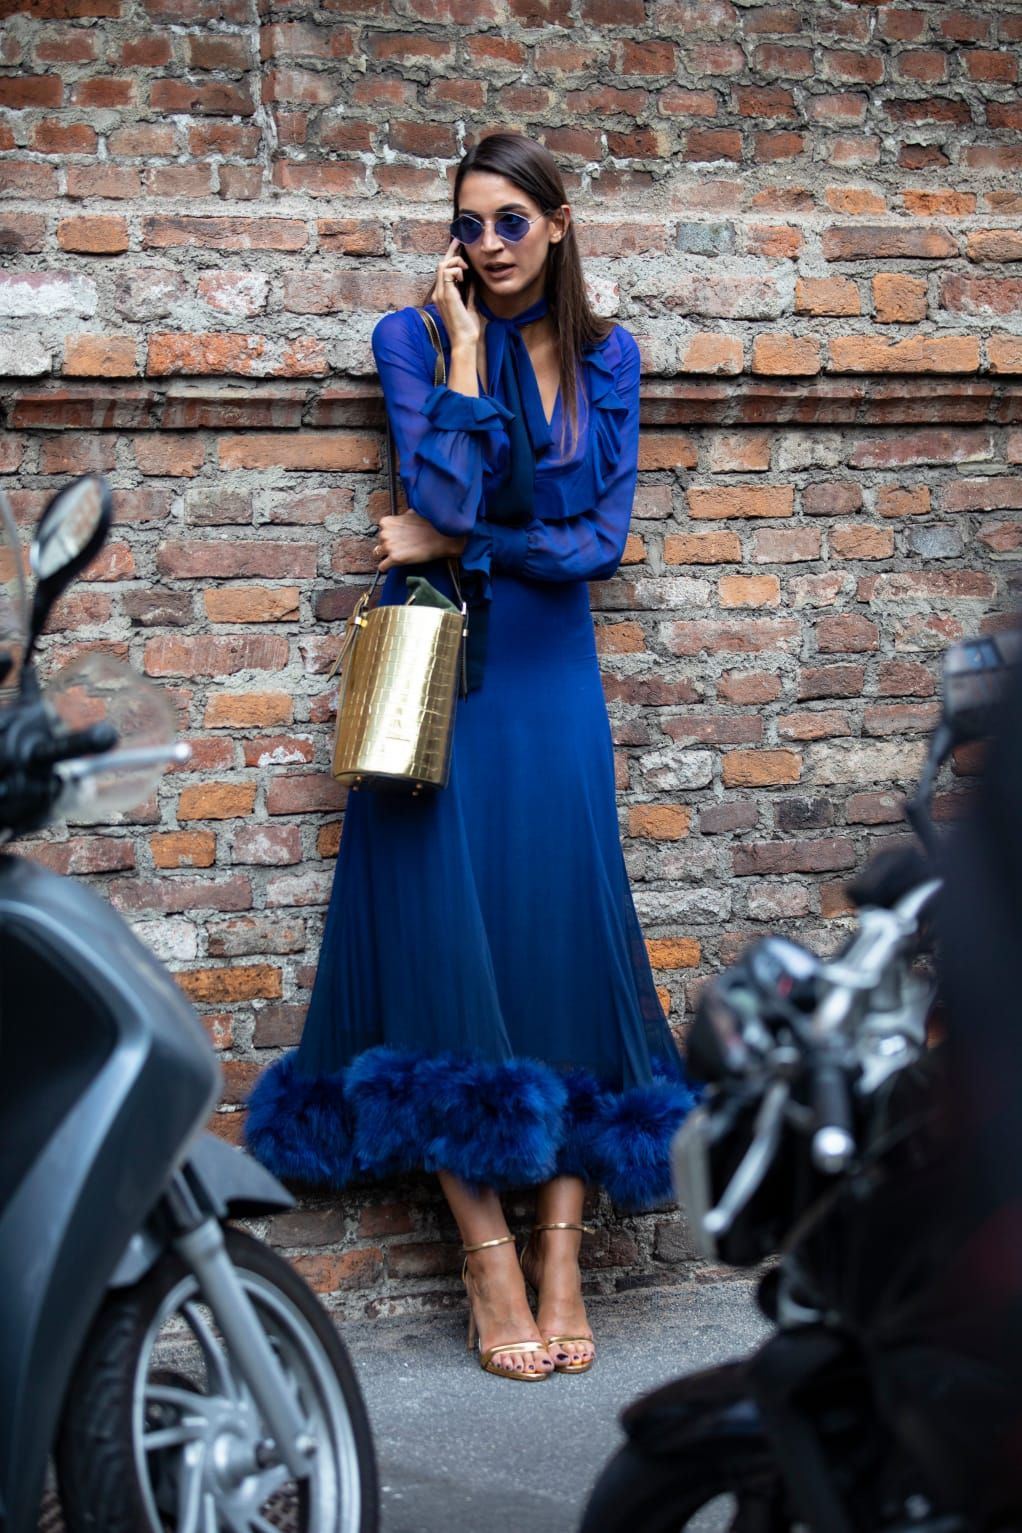 bfdba6057f4a Long sleeve blue midi dress with blue fur trim. Gold strappy sandals and a  gold handbag. | Special occasion / party outfit inspiration